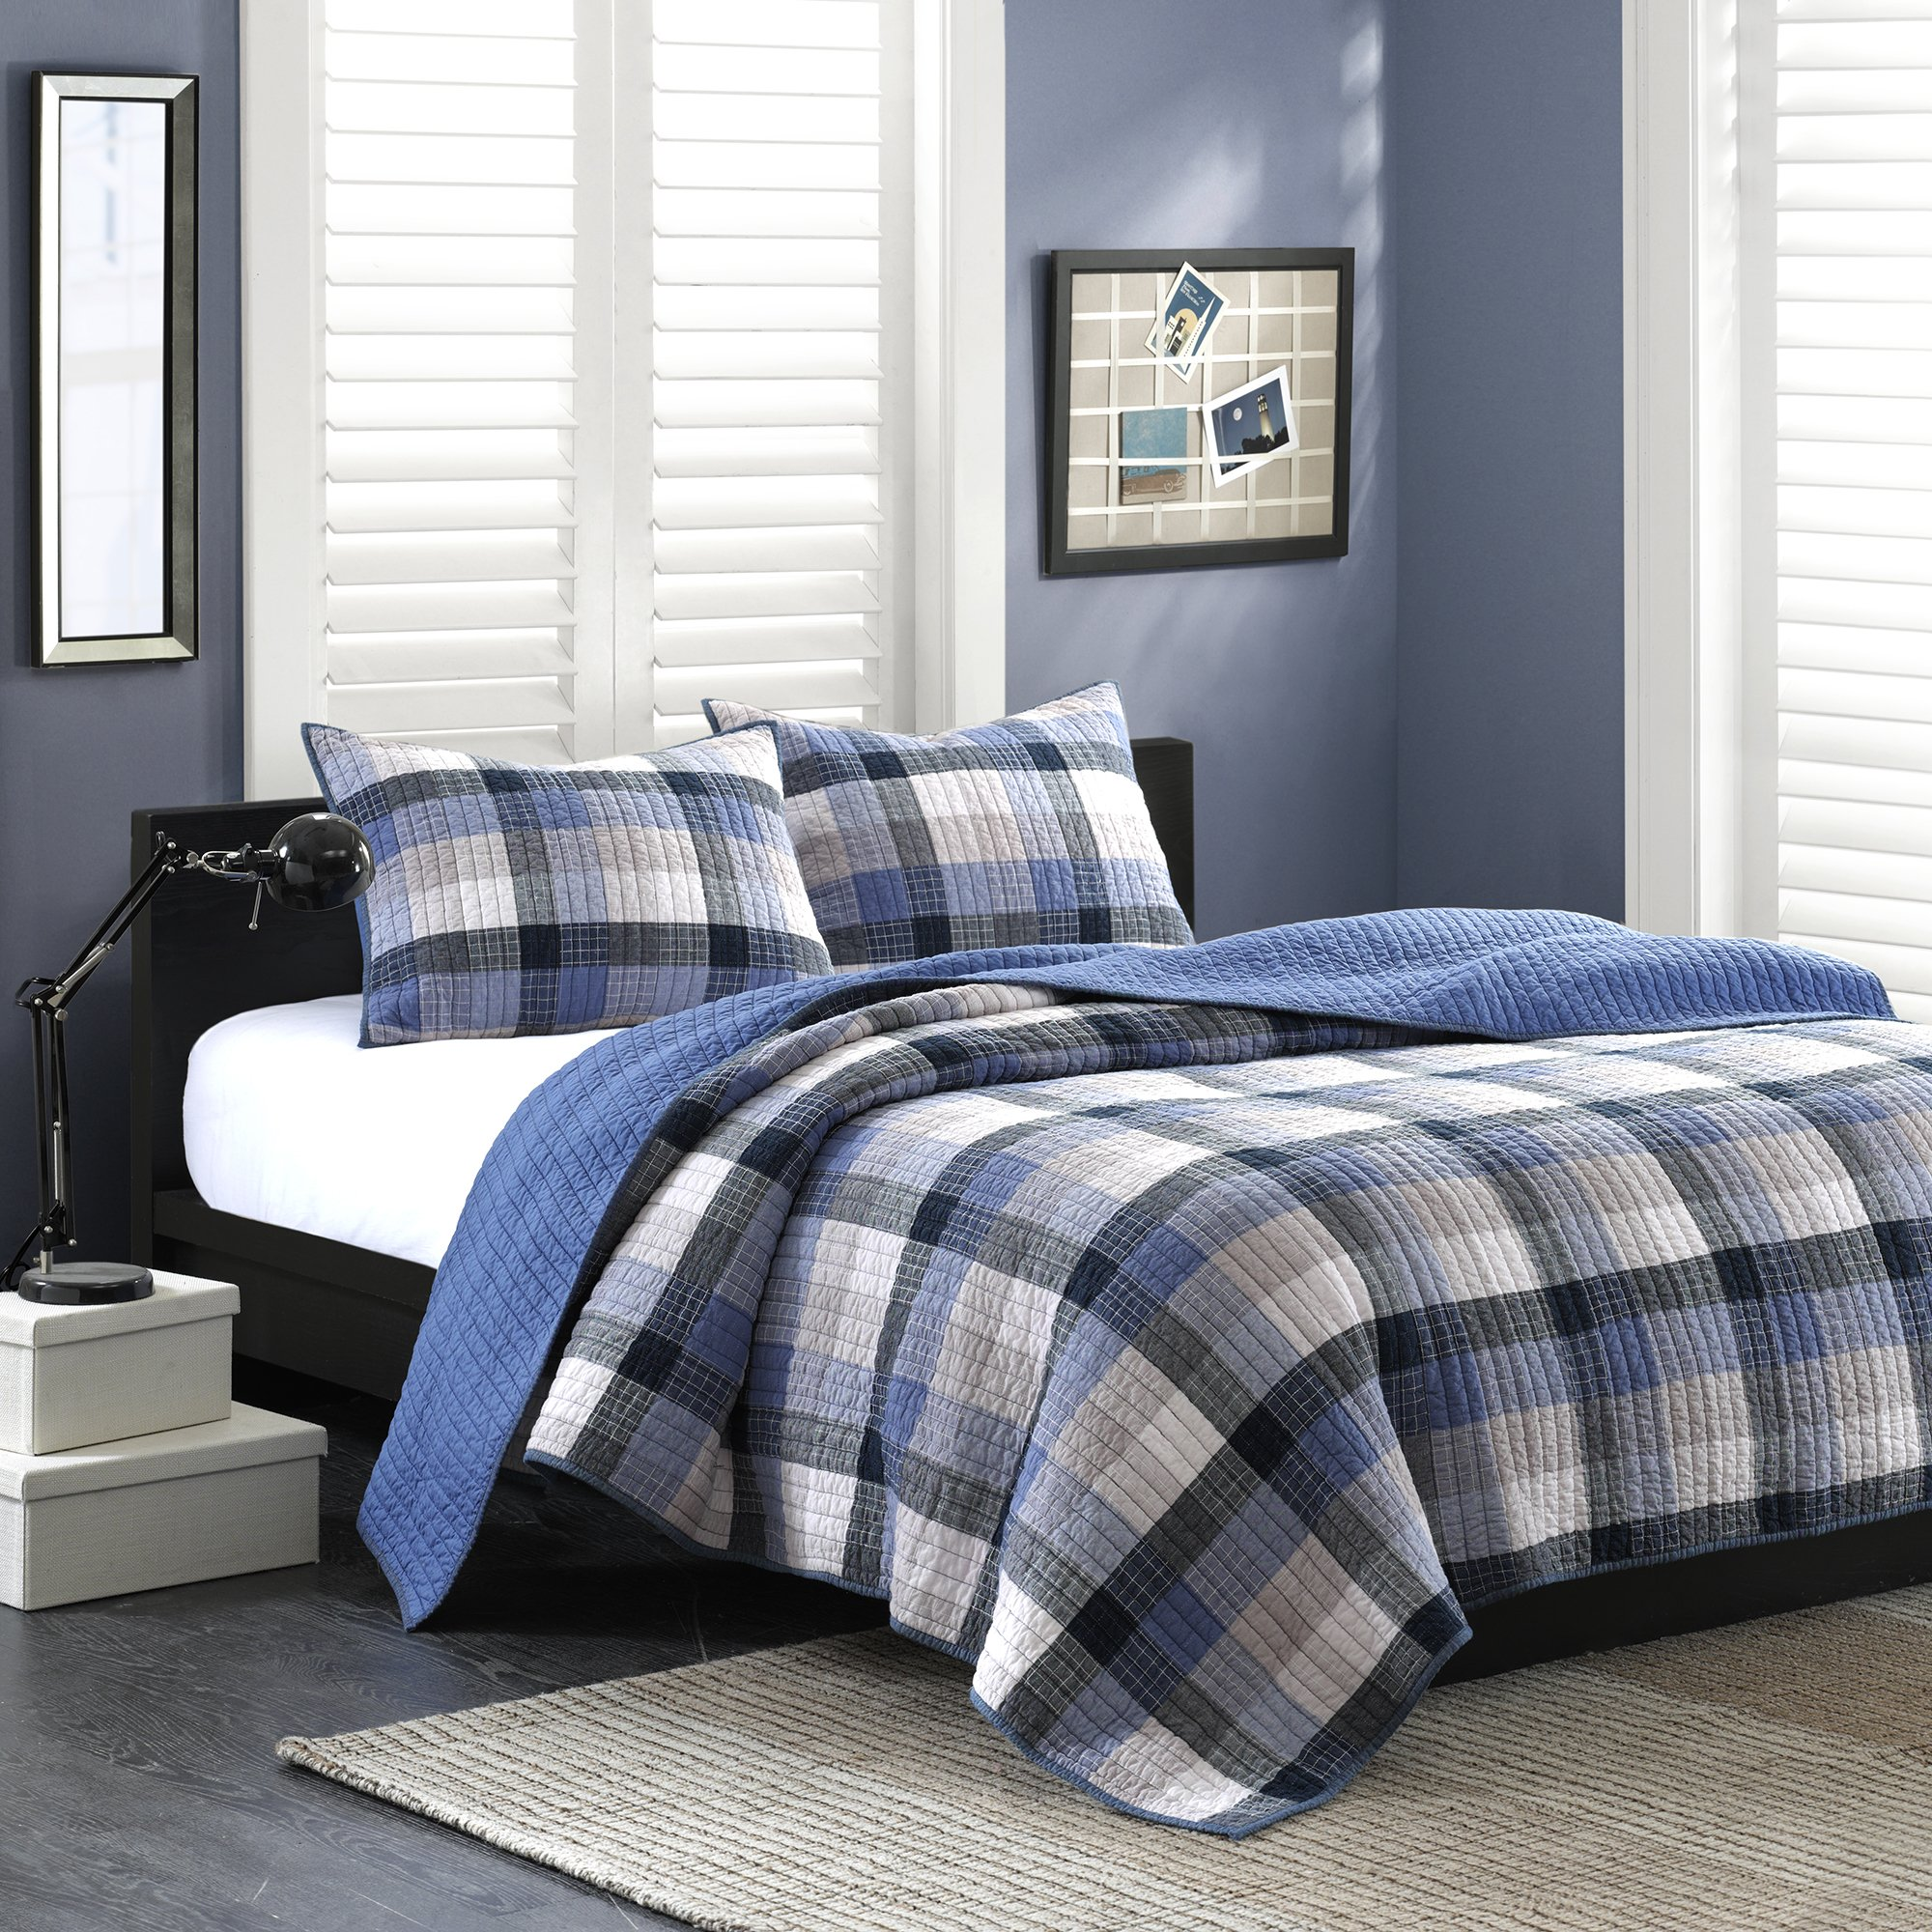 Ink+Ivy Maddox Twin Size Teen Boys Quilt Bedding Set - Navy, Black, Plaid – 2 Piece Boys Bedding Quilt Coverlets – 100% Cotton Yarn And Cotton Percale Bed Quilts Quilted Coverlet